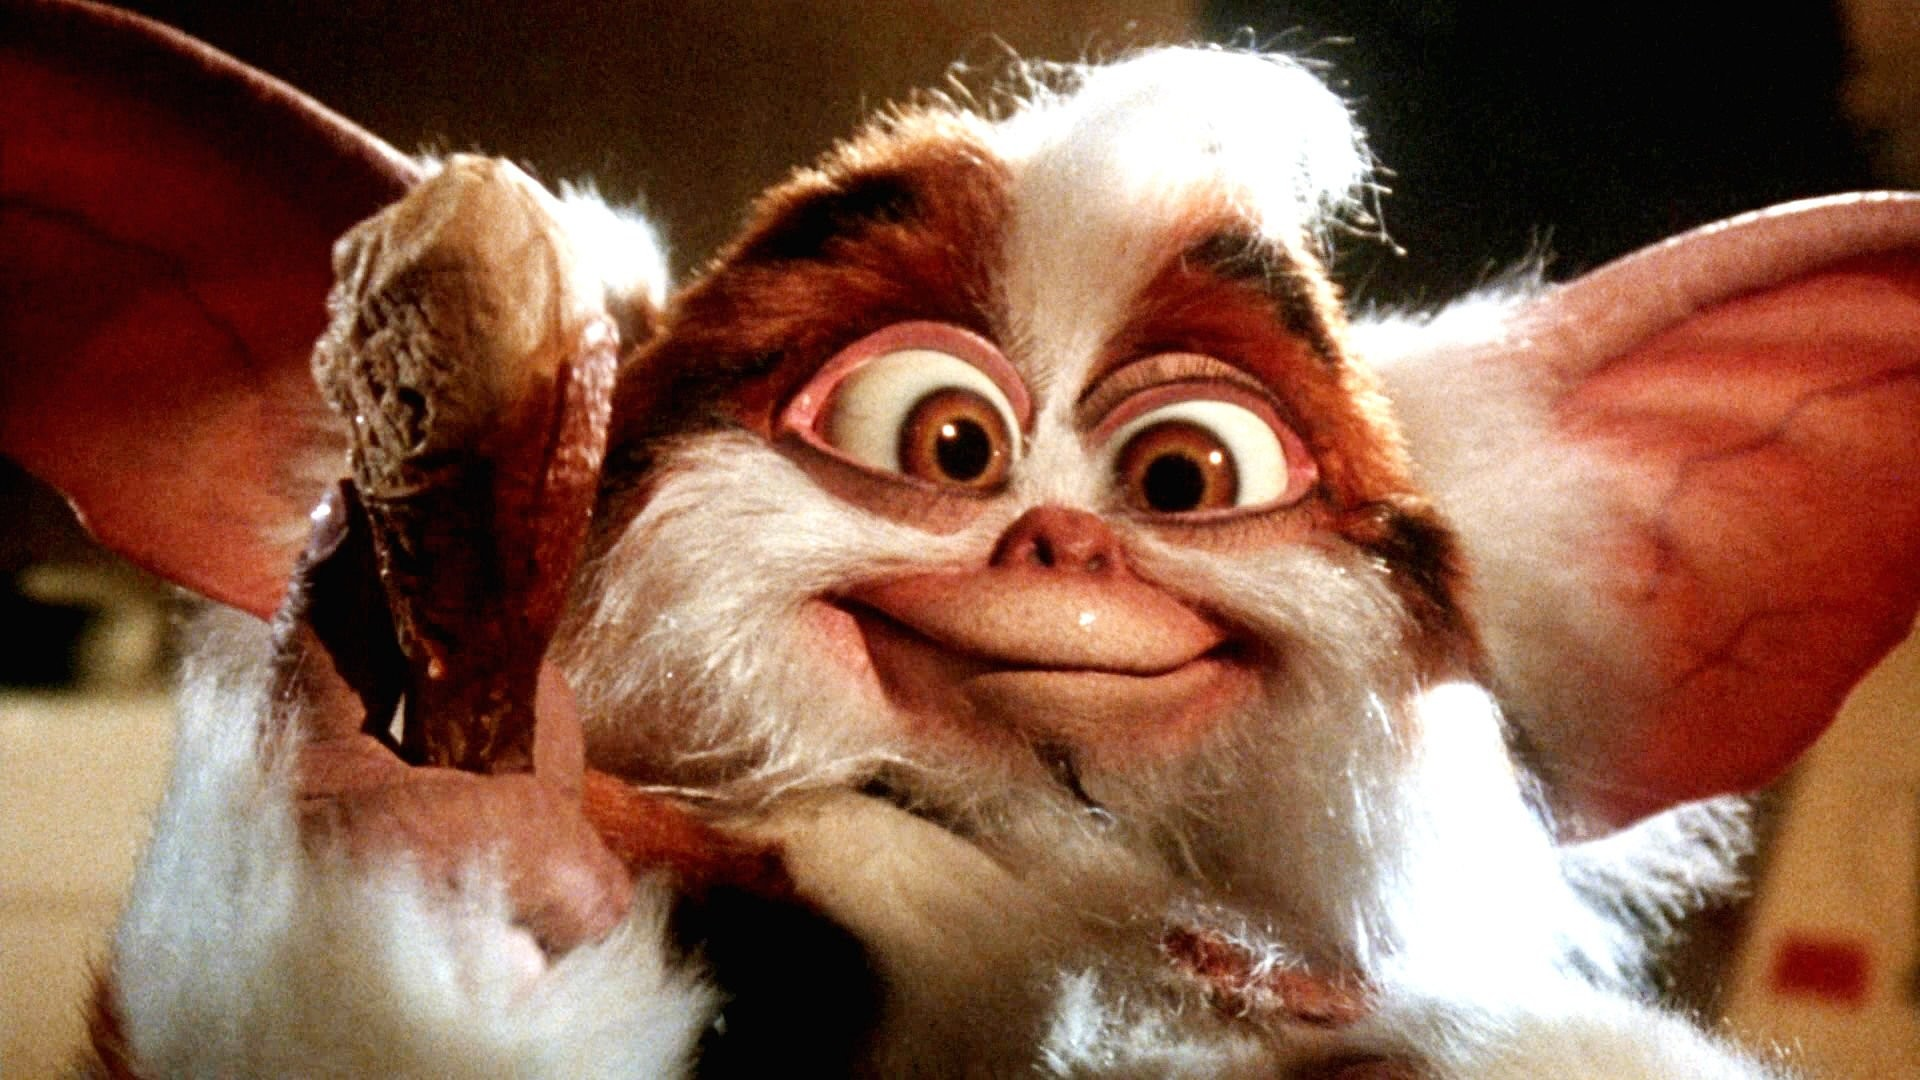 Res: 1920x1080, Gremlins Wallpapers 5 - 1920 X 1080